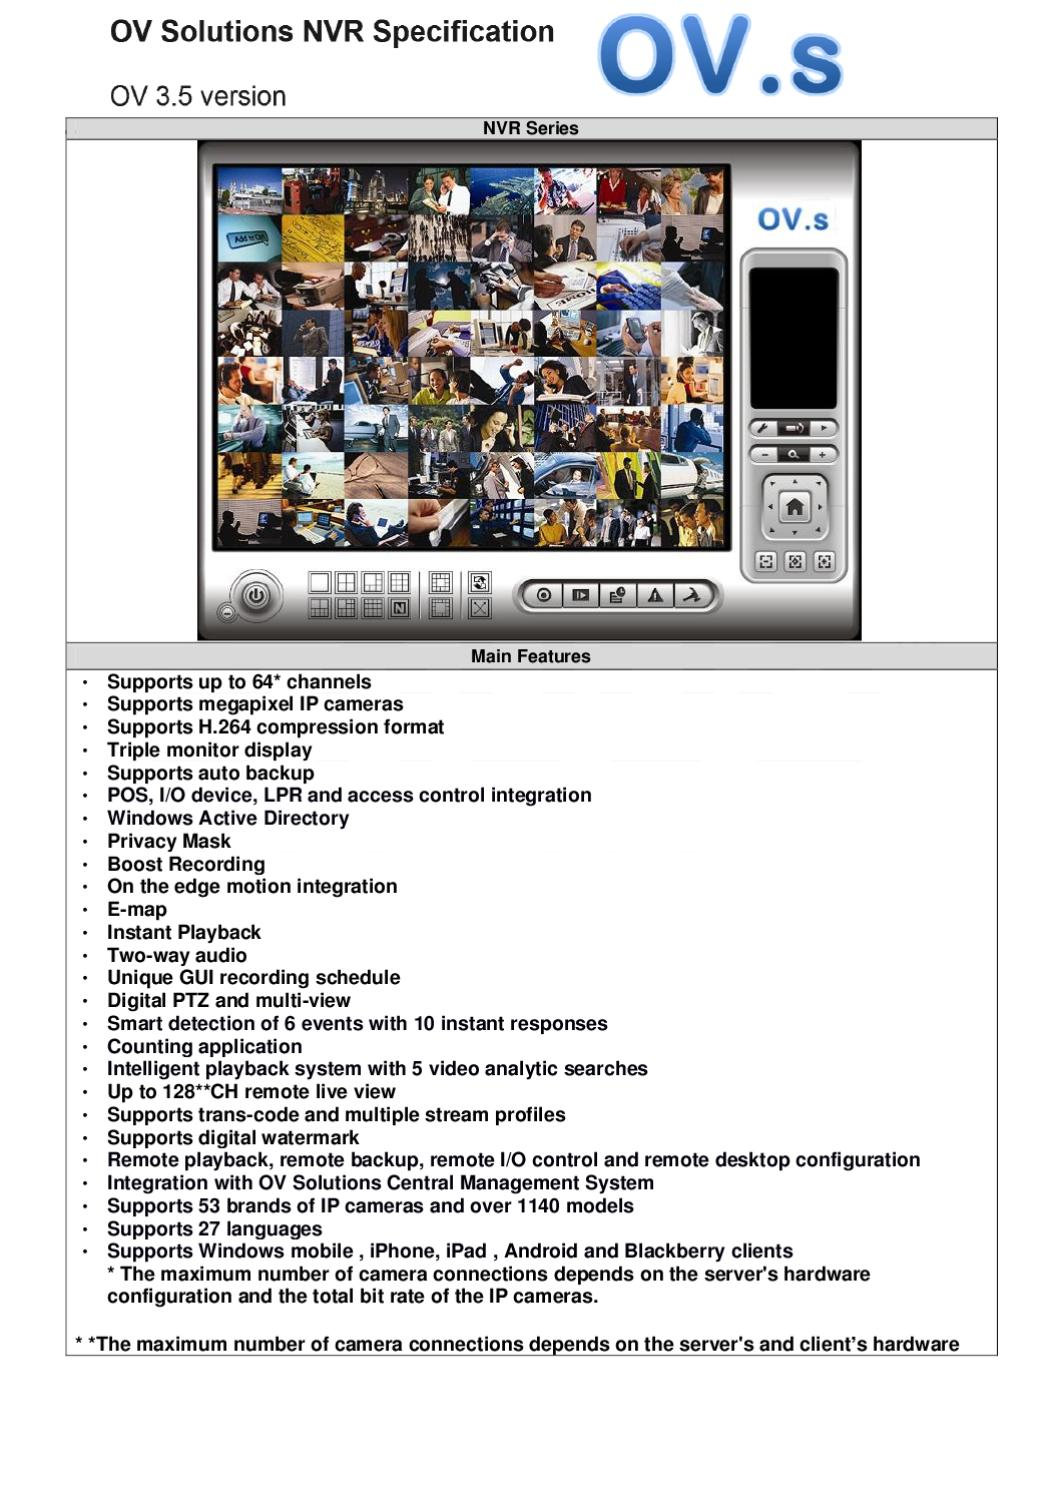 OVS Network Video Recorder Spec Sheet by OVS - issuu